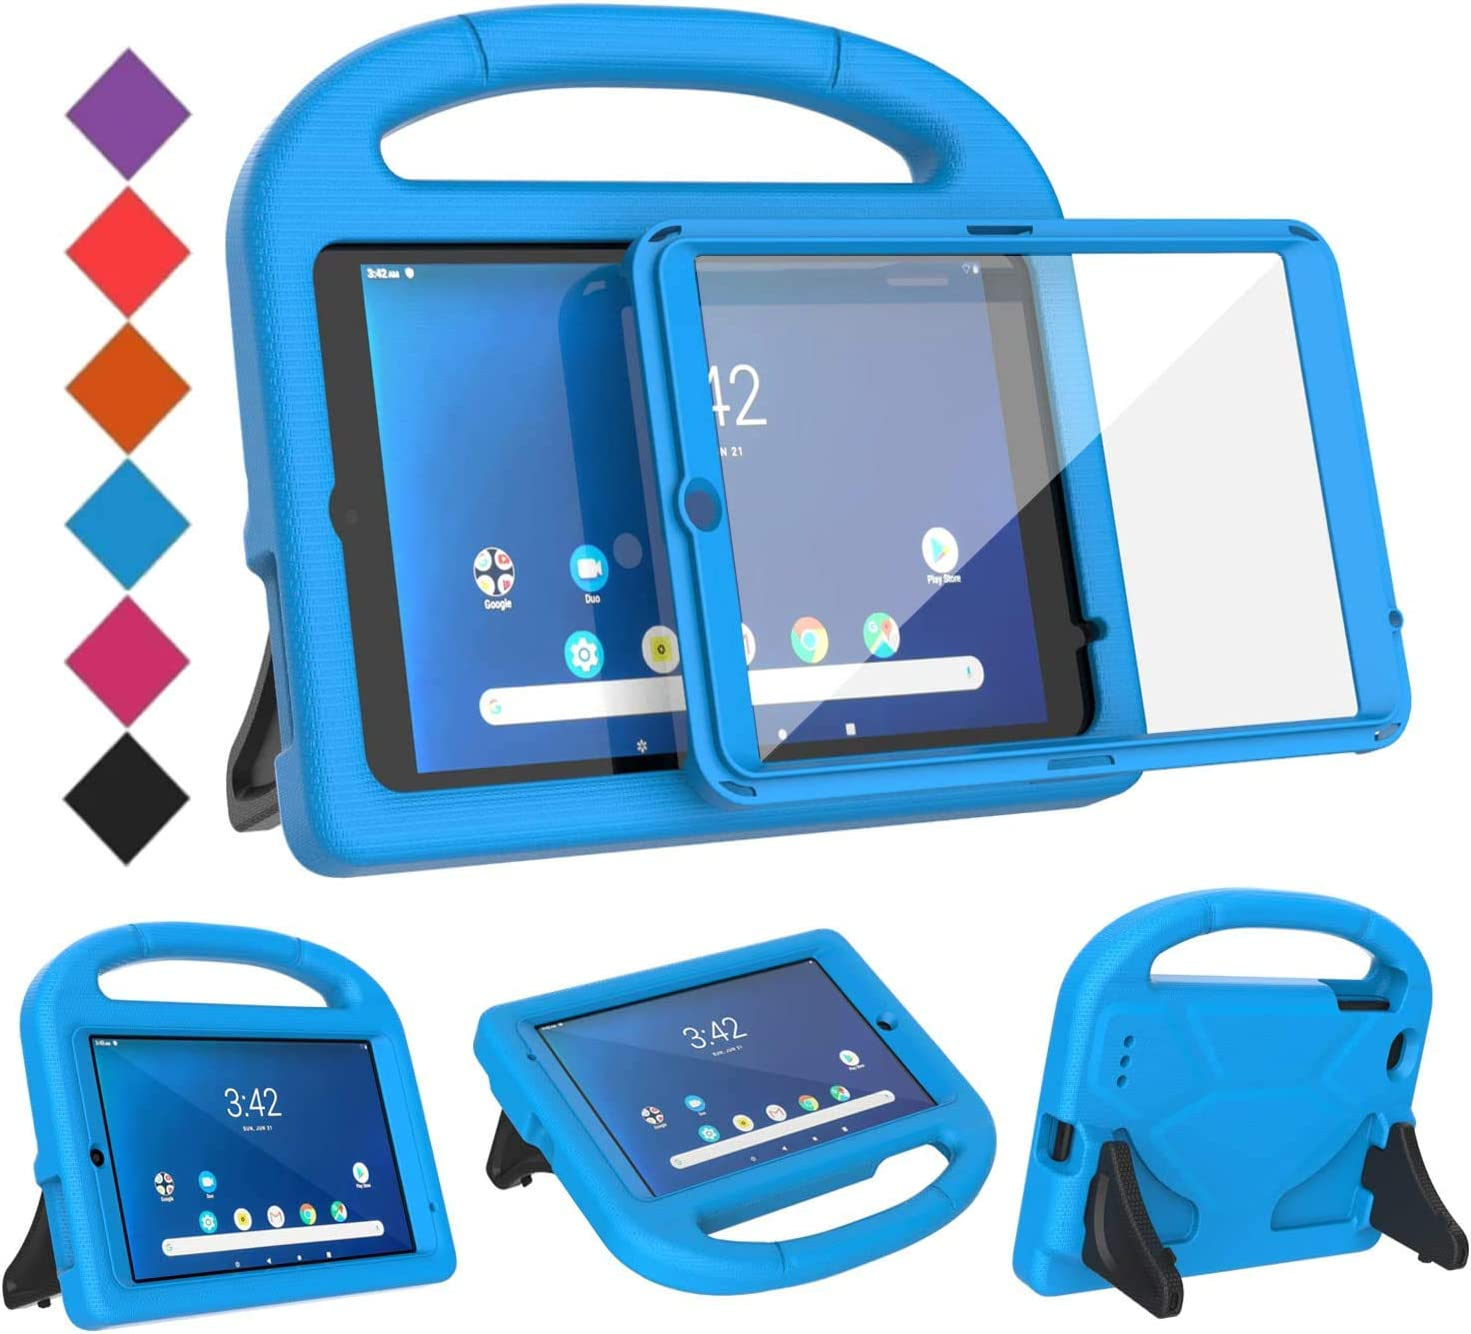 BMOUO Kids Case for Walmart Onn 8 inch Tablet 2019 ONLY (ONA19TB002) , Onn 8 inch Tablet Case Built-in Screen Protector, Shockproof Light Weight Handle Stand Case for Onn 8 inch Tablet 2019- Blue